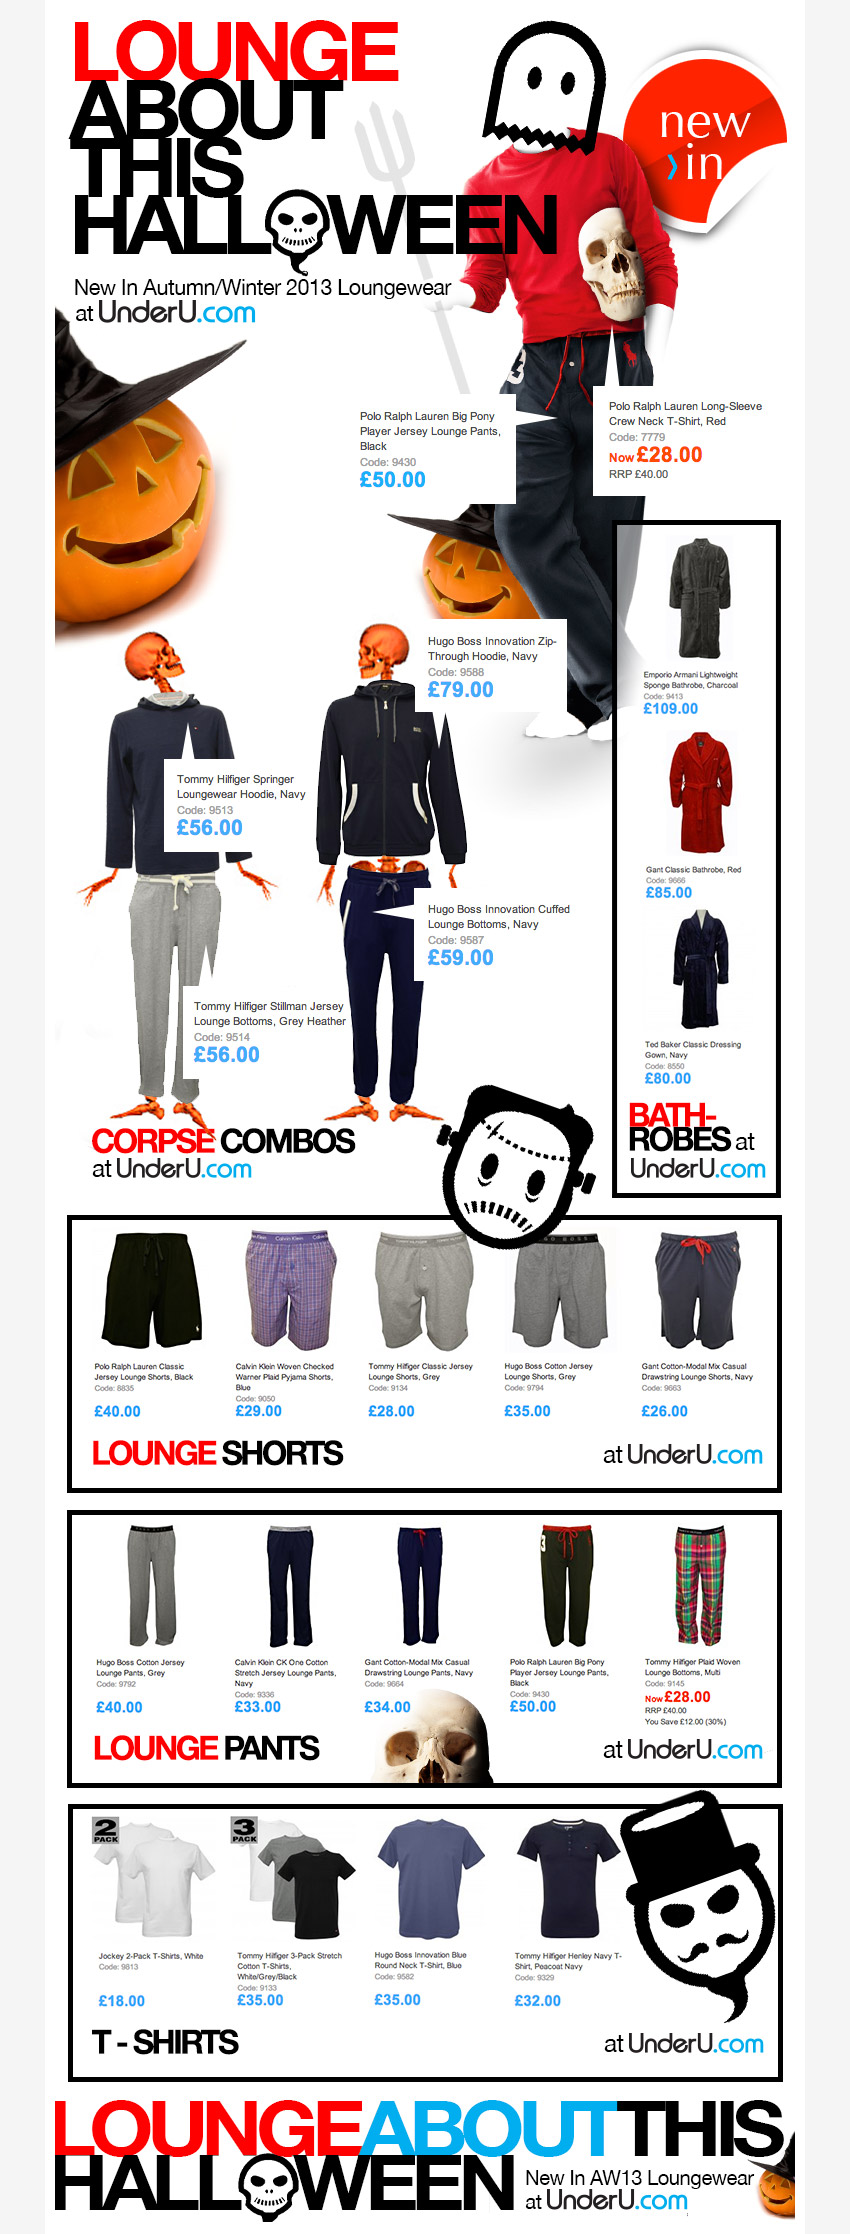 Men's Loungewear at UnderU.com